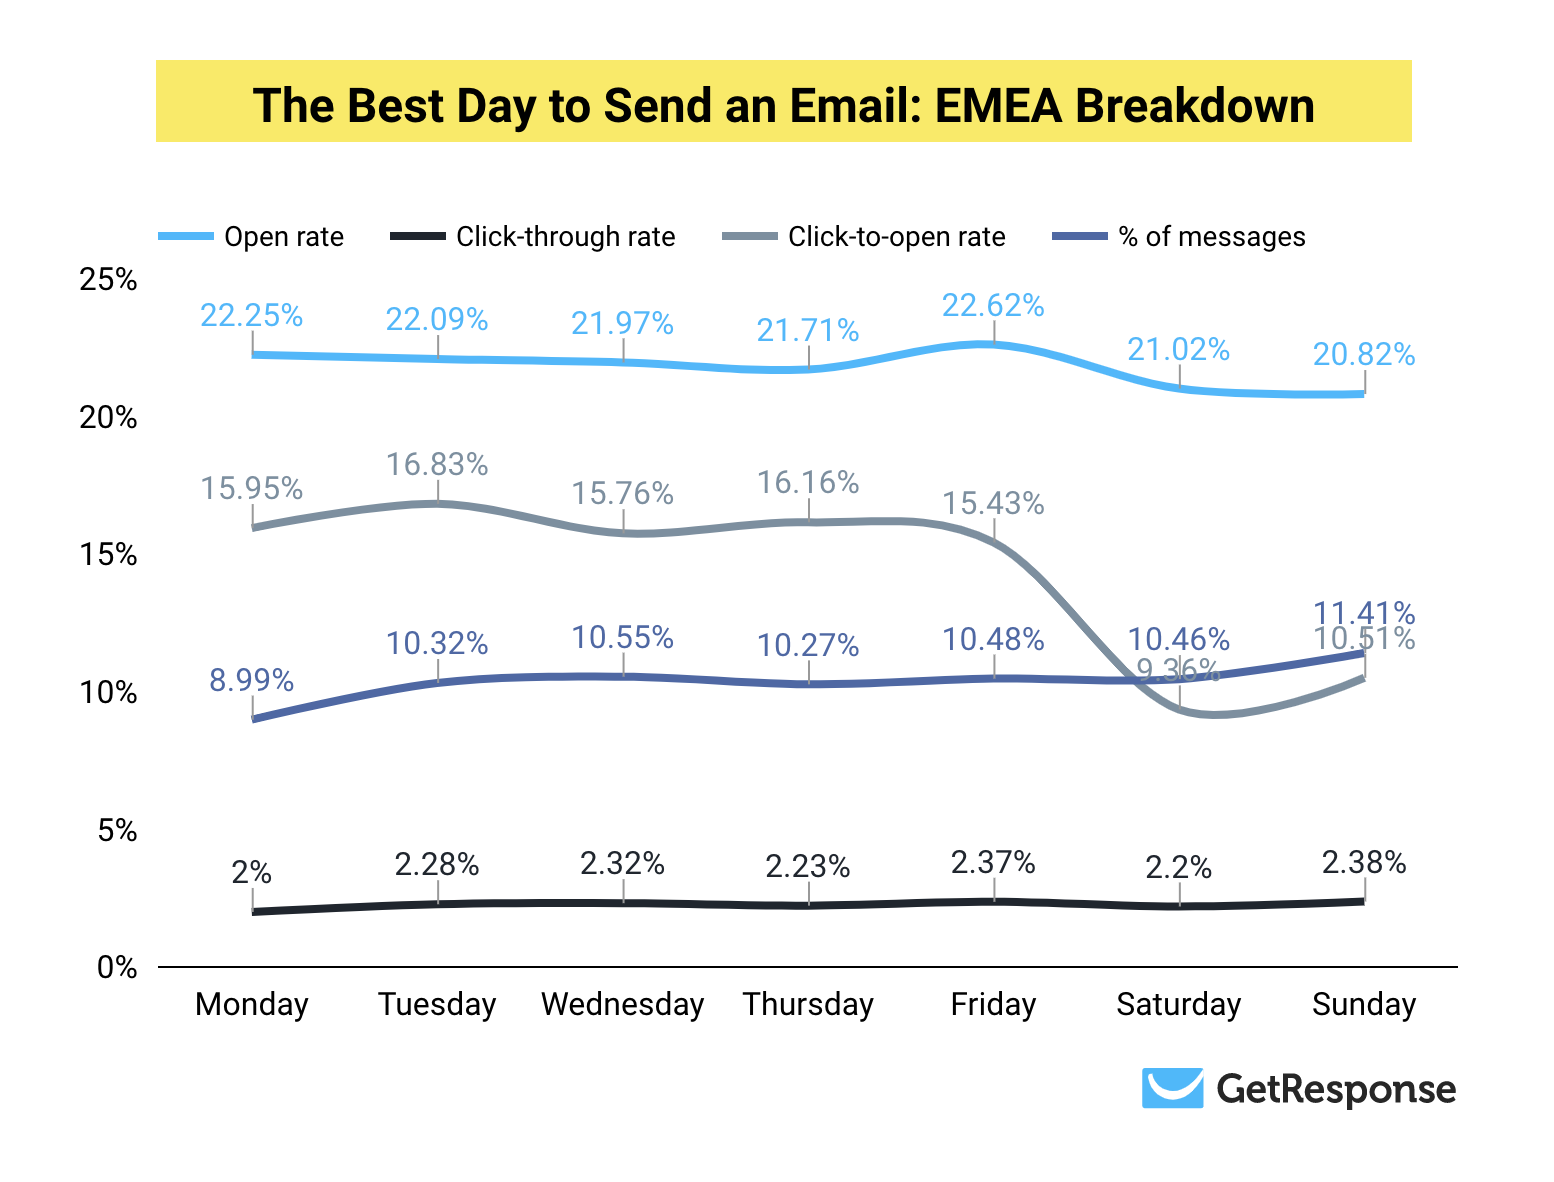 The Best Day to Send Emails in EMEA.